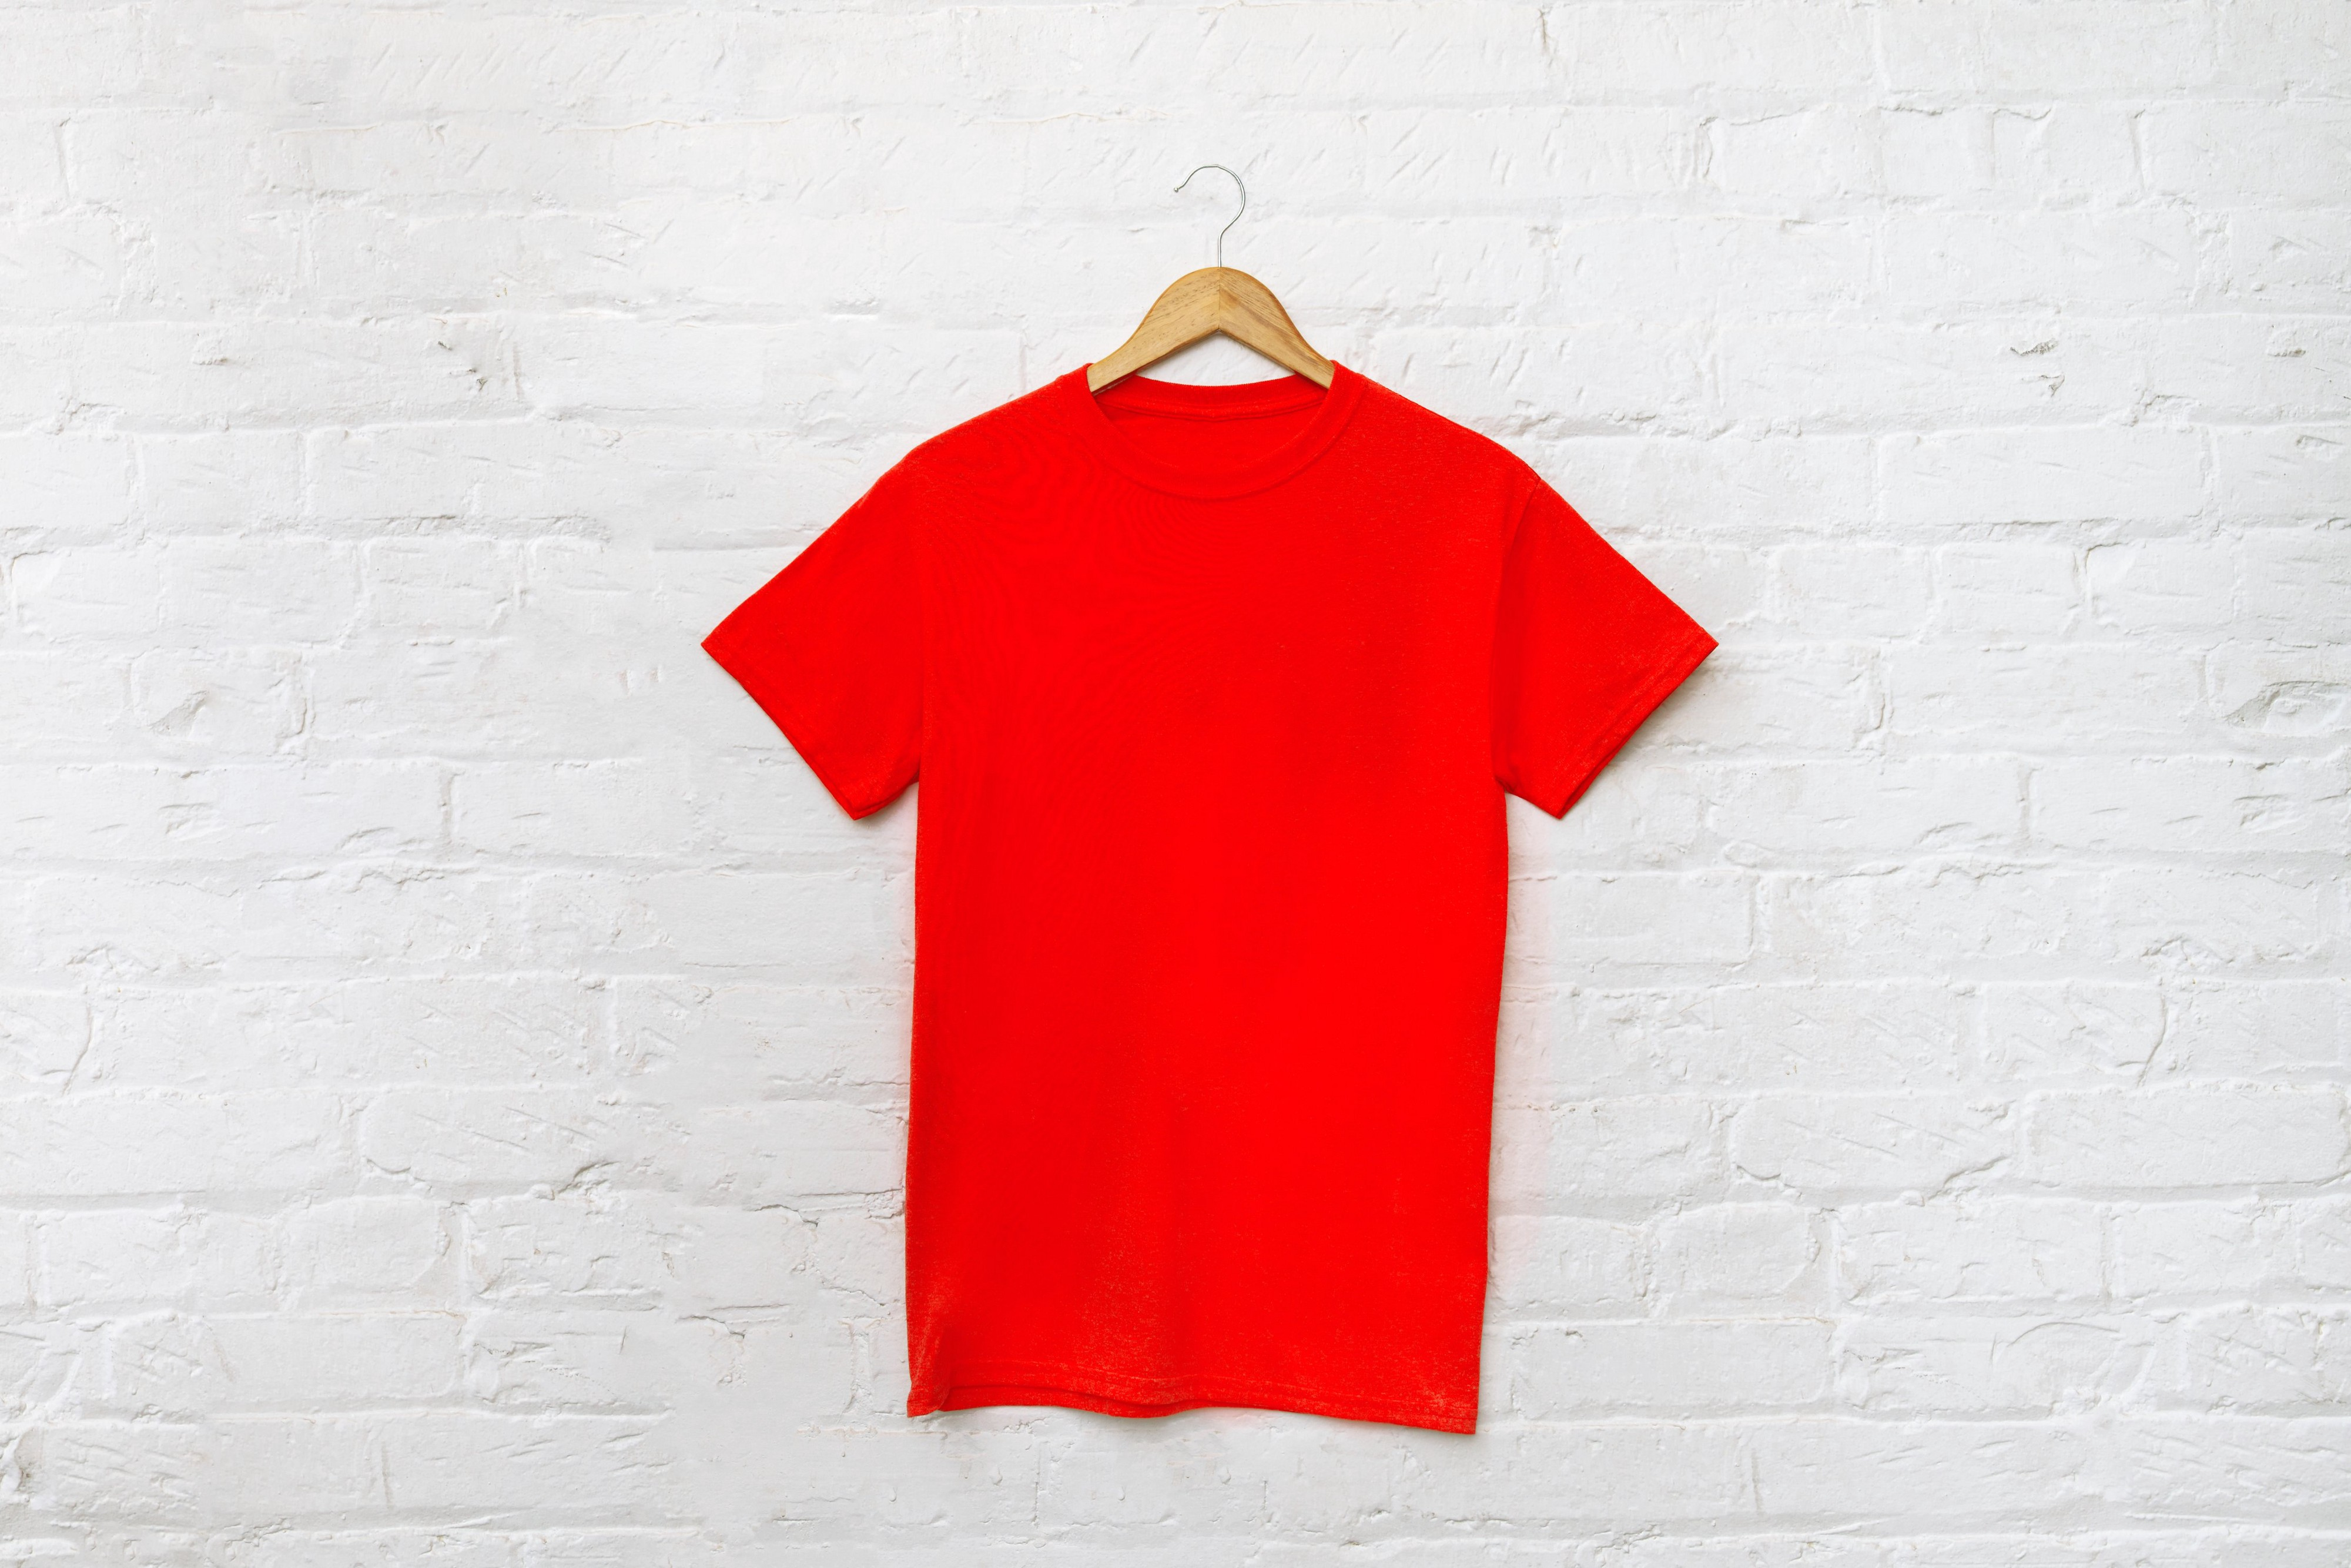 a t-shirt on a hanger to redesign for a Braille Christmas